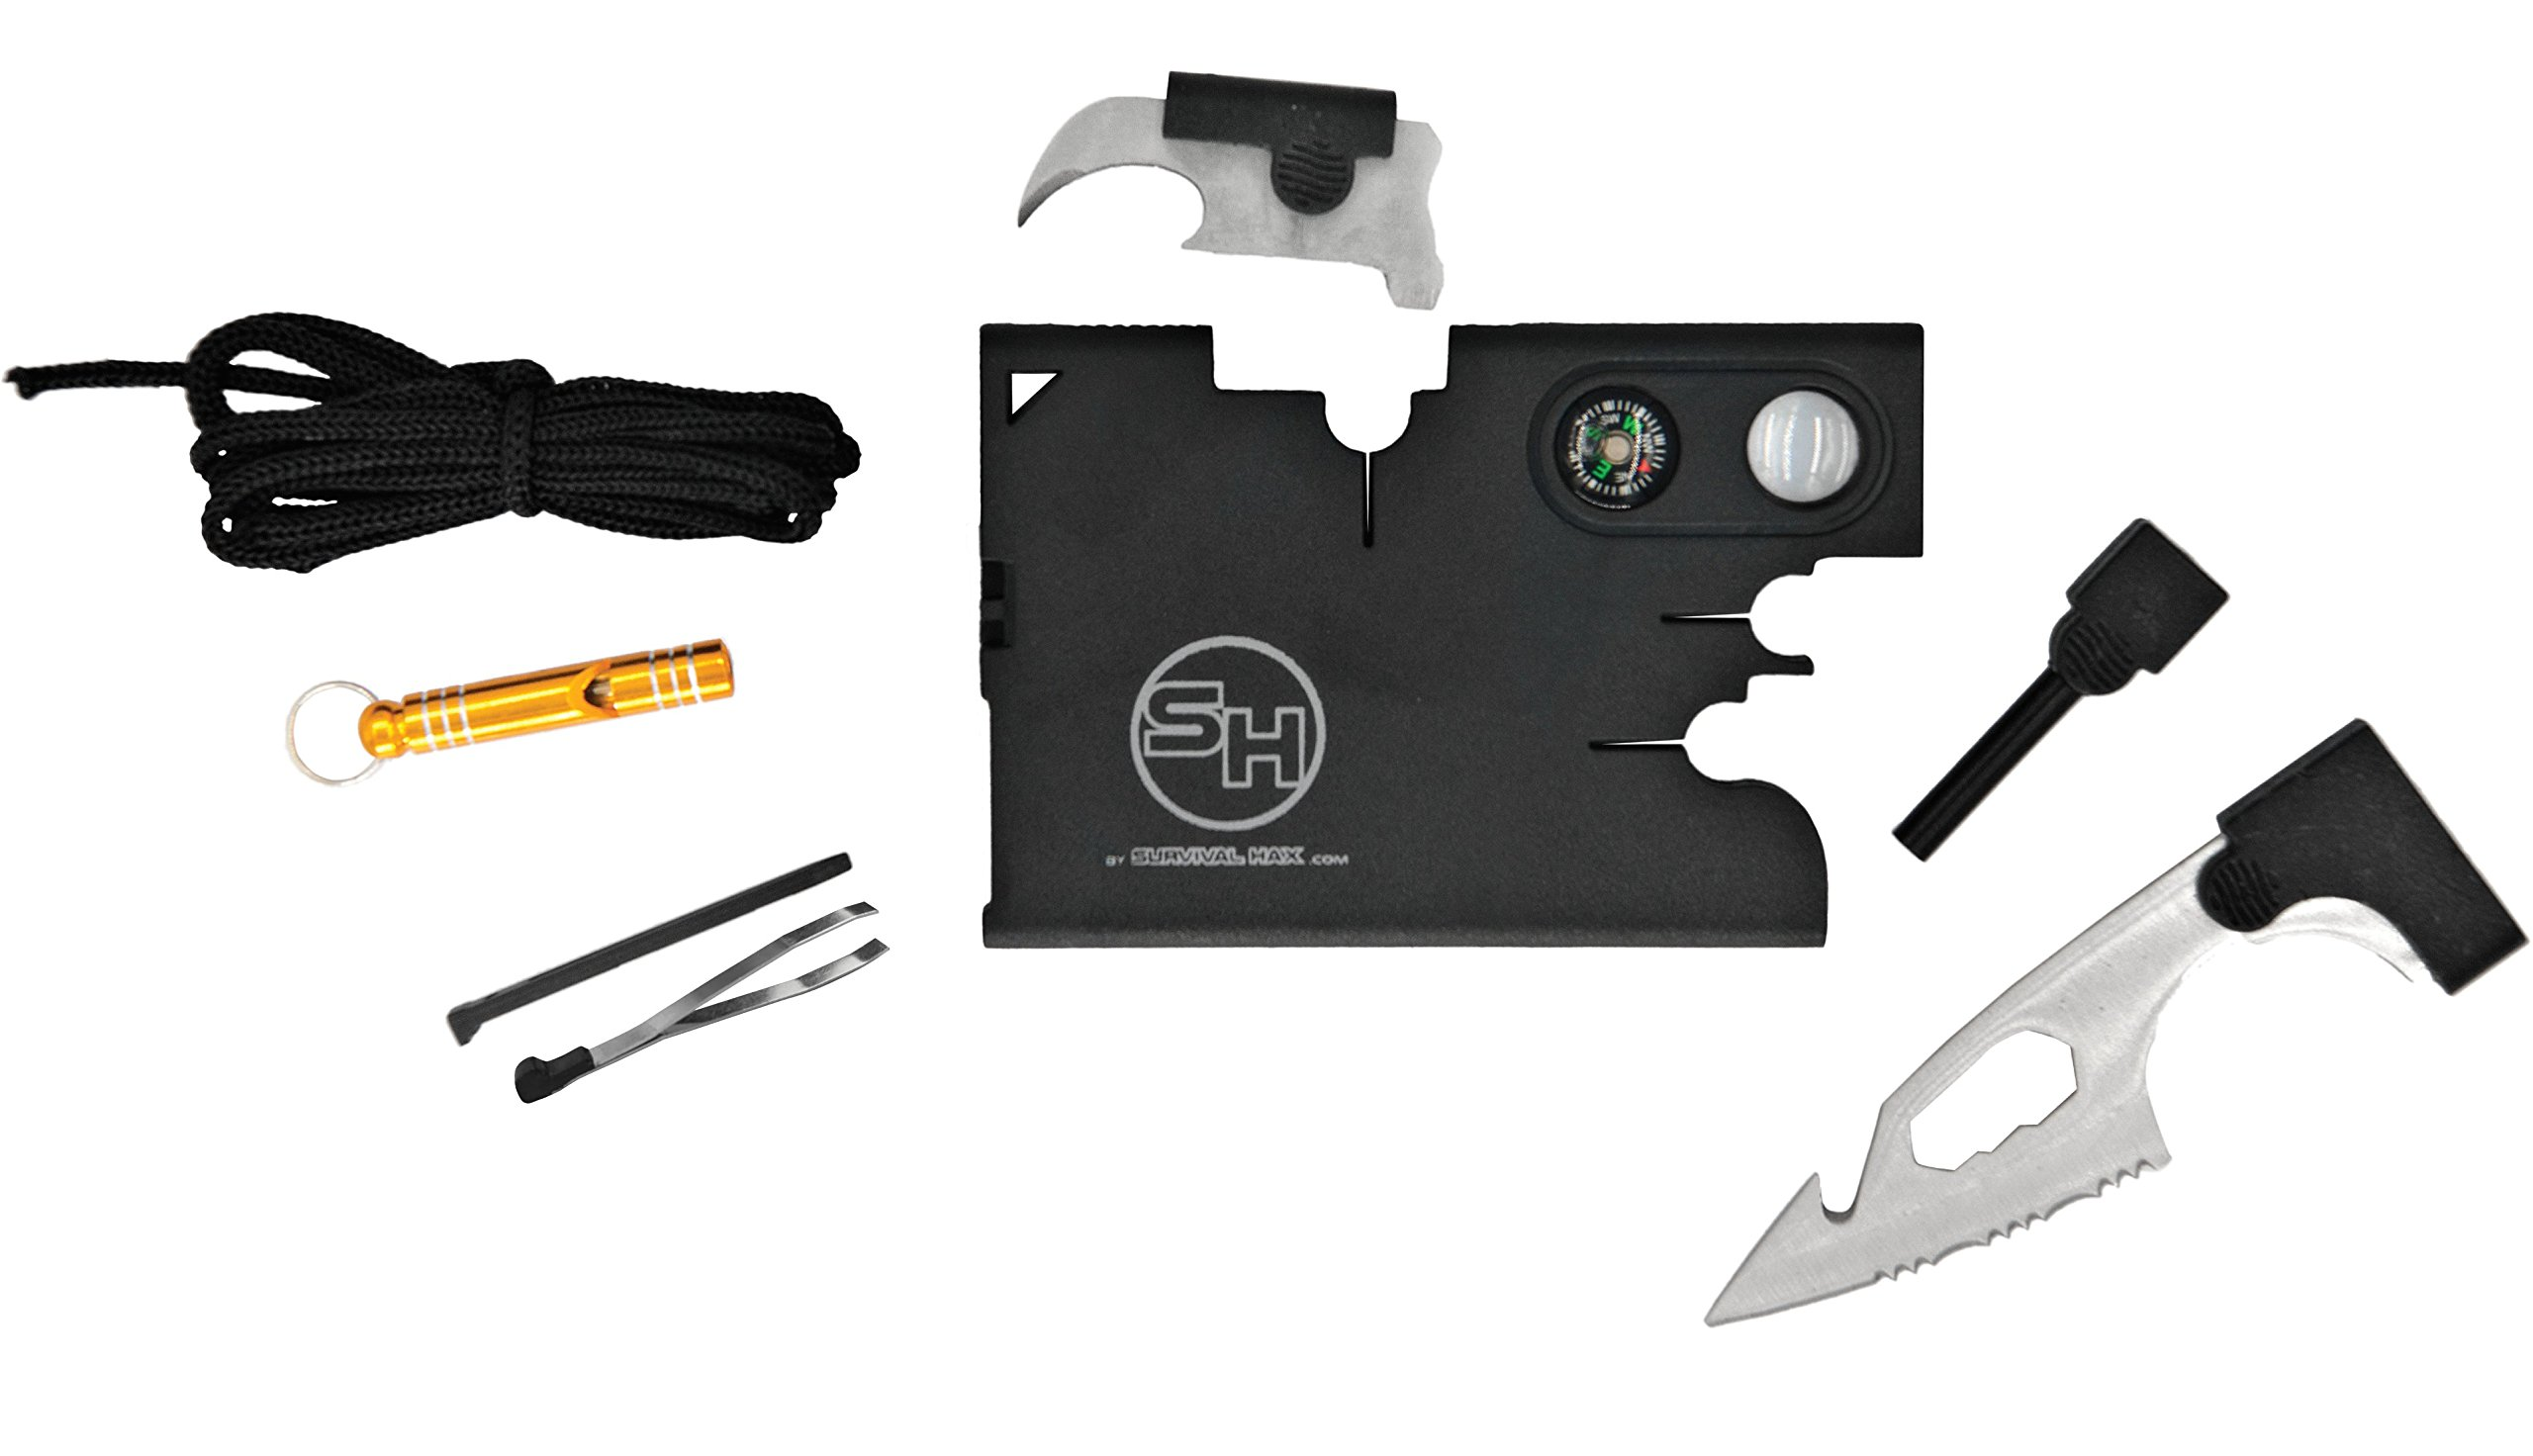 Tactical Credit Card Wallet Tool with Emergency Whistle and Gift Box by Survival Hax